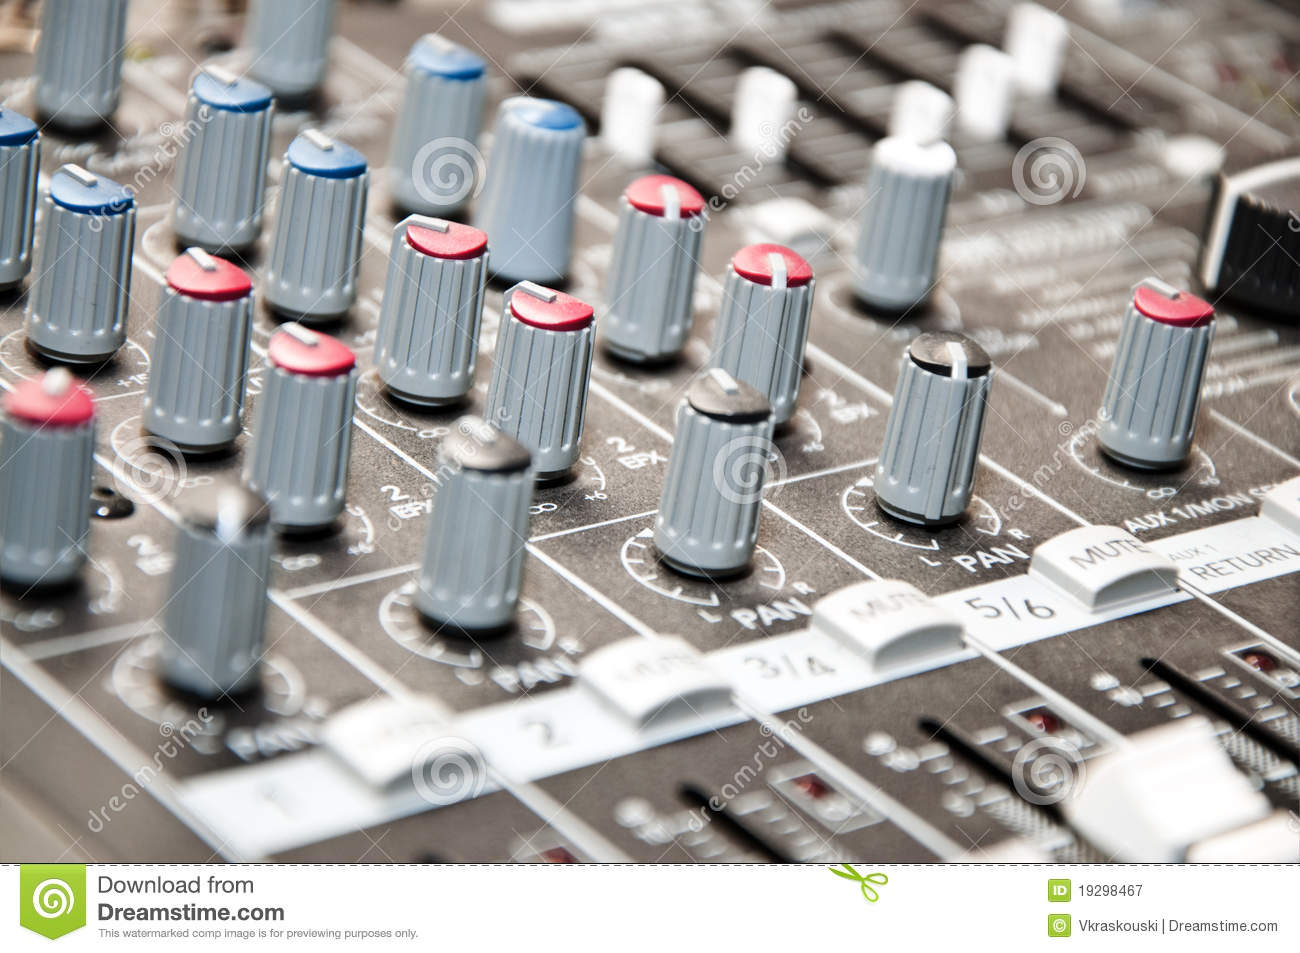 how to bring up sound mixer